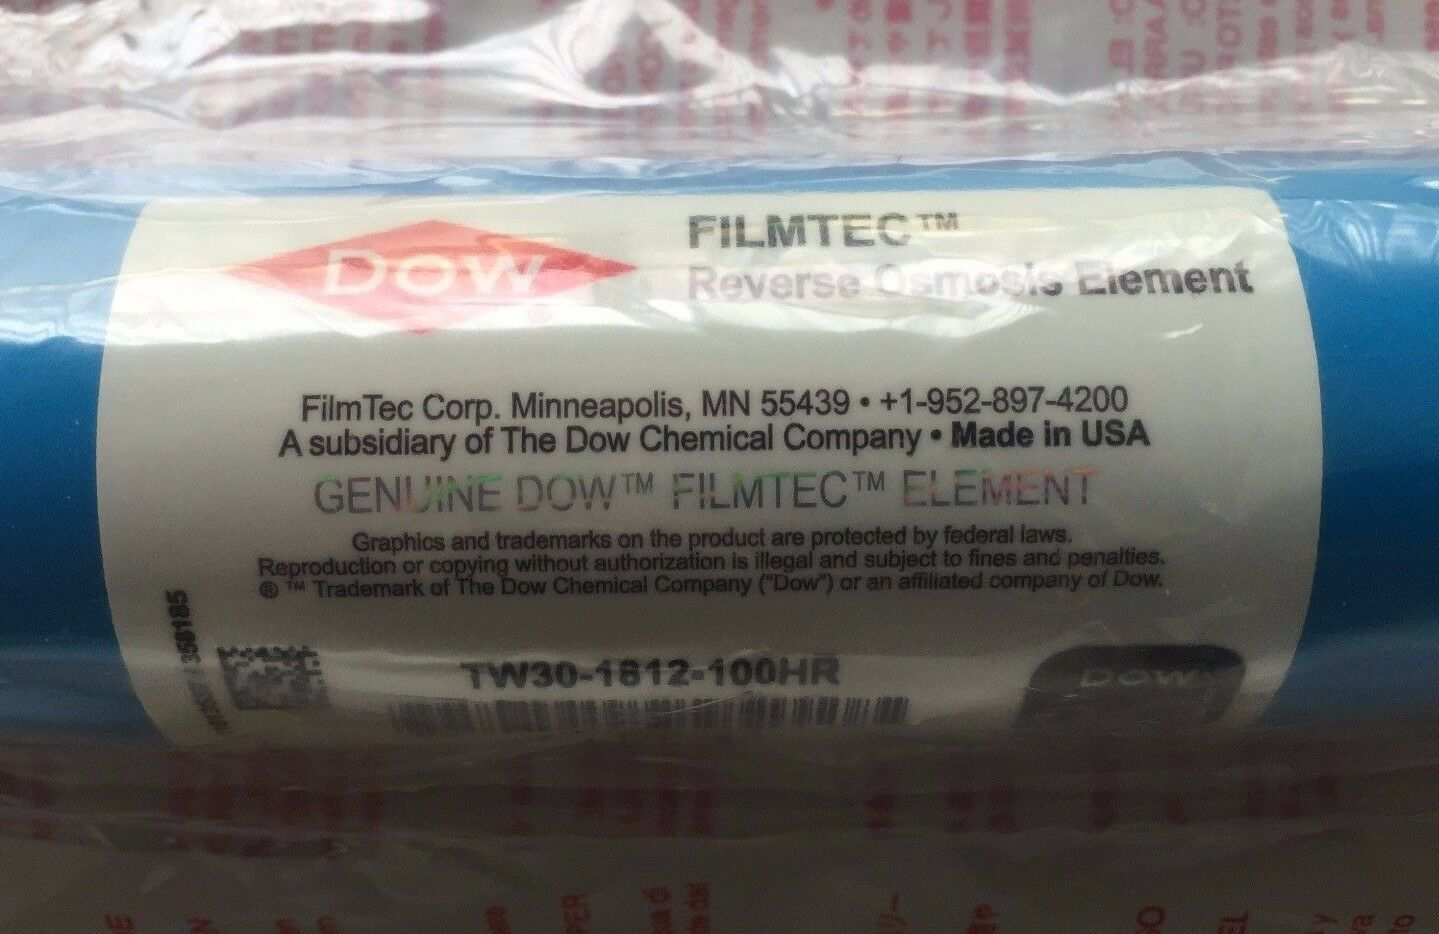 NEW FILMTEC RO MEMBRANE 100 GPD TW30-1812-100HR - CASE OF OF OF 25 FILTERS 2005dd